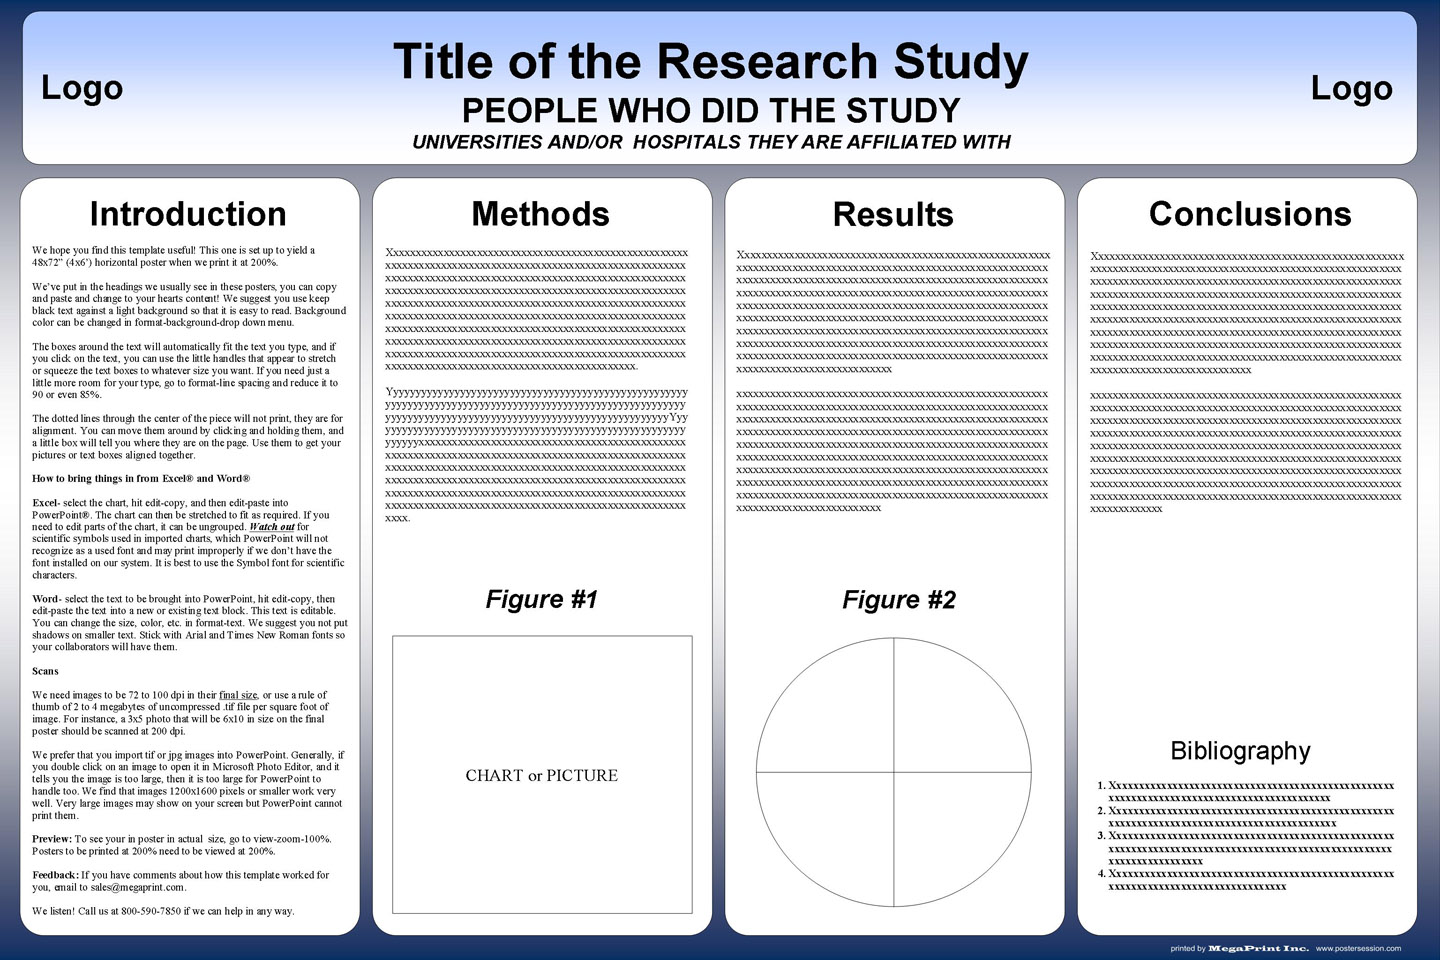 Free powerpoint scientific research poster templates for for Academic poster template powerpoint a2